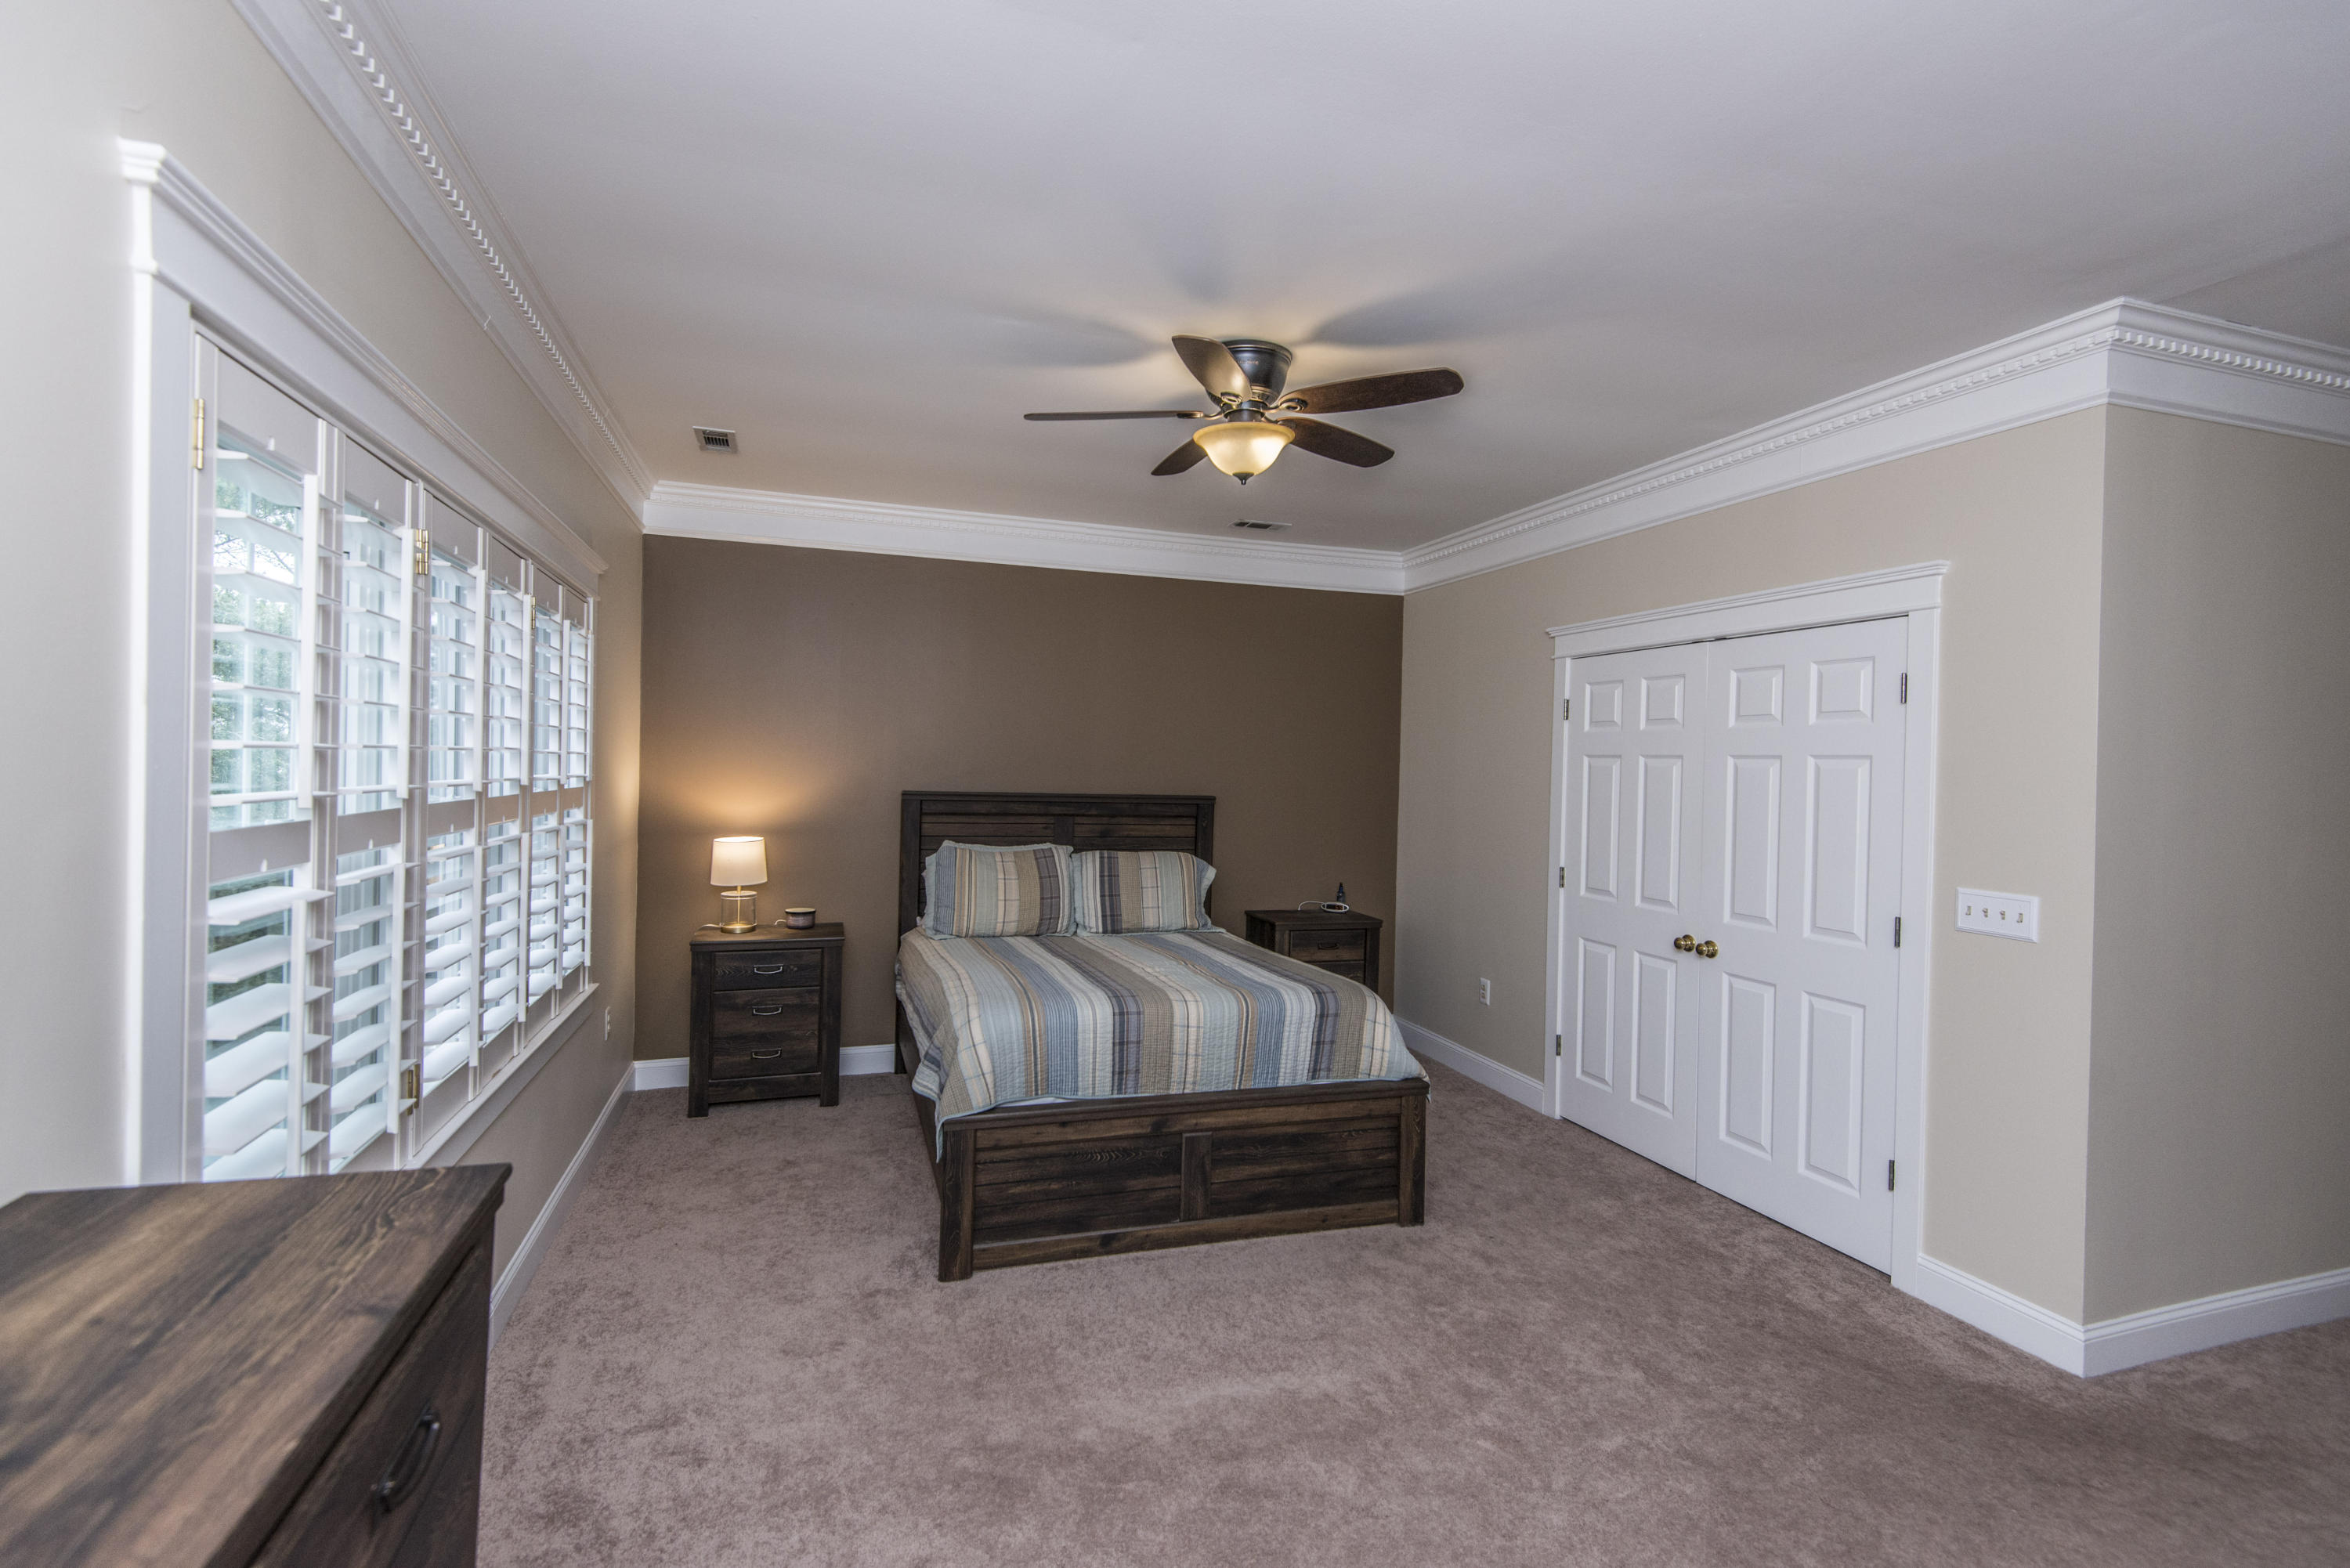 Etiwan Pointe Homes For Sale - 92 Salty Tide, Mount Pleasant, SC - 27